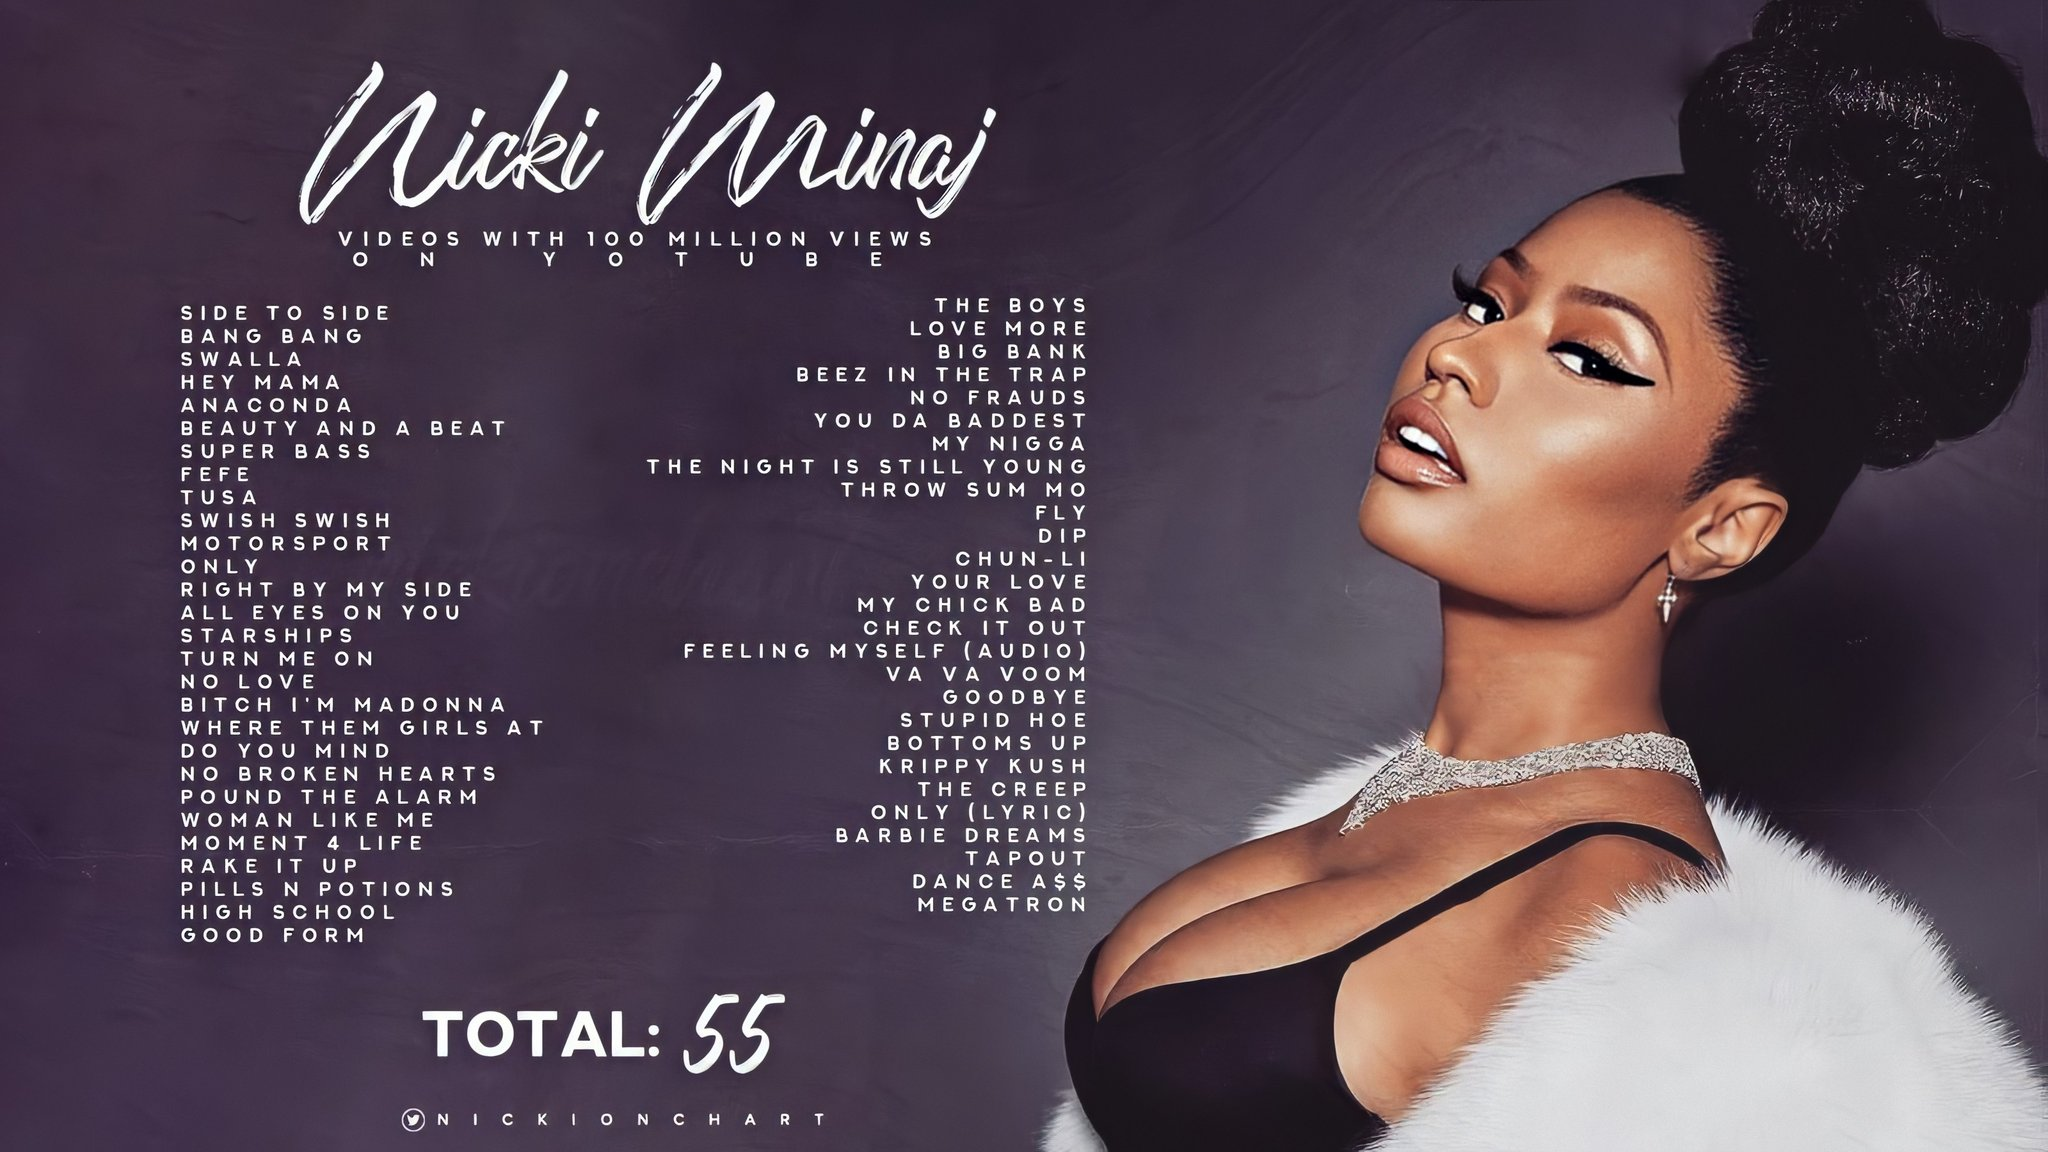 Nicki Minaj Charts On Twitter Nickiminaj Is The First Female Artist In History To Have At Least 55 Videos With Over 100 Million Views On Youtube Https T Co 7y4heow5hq